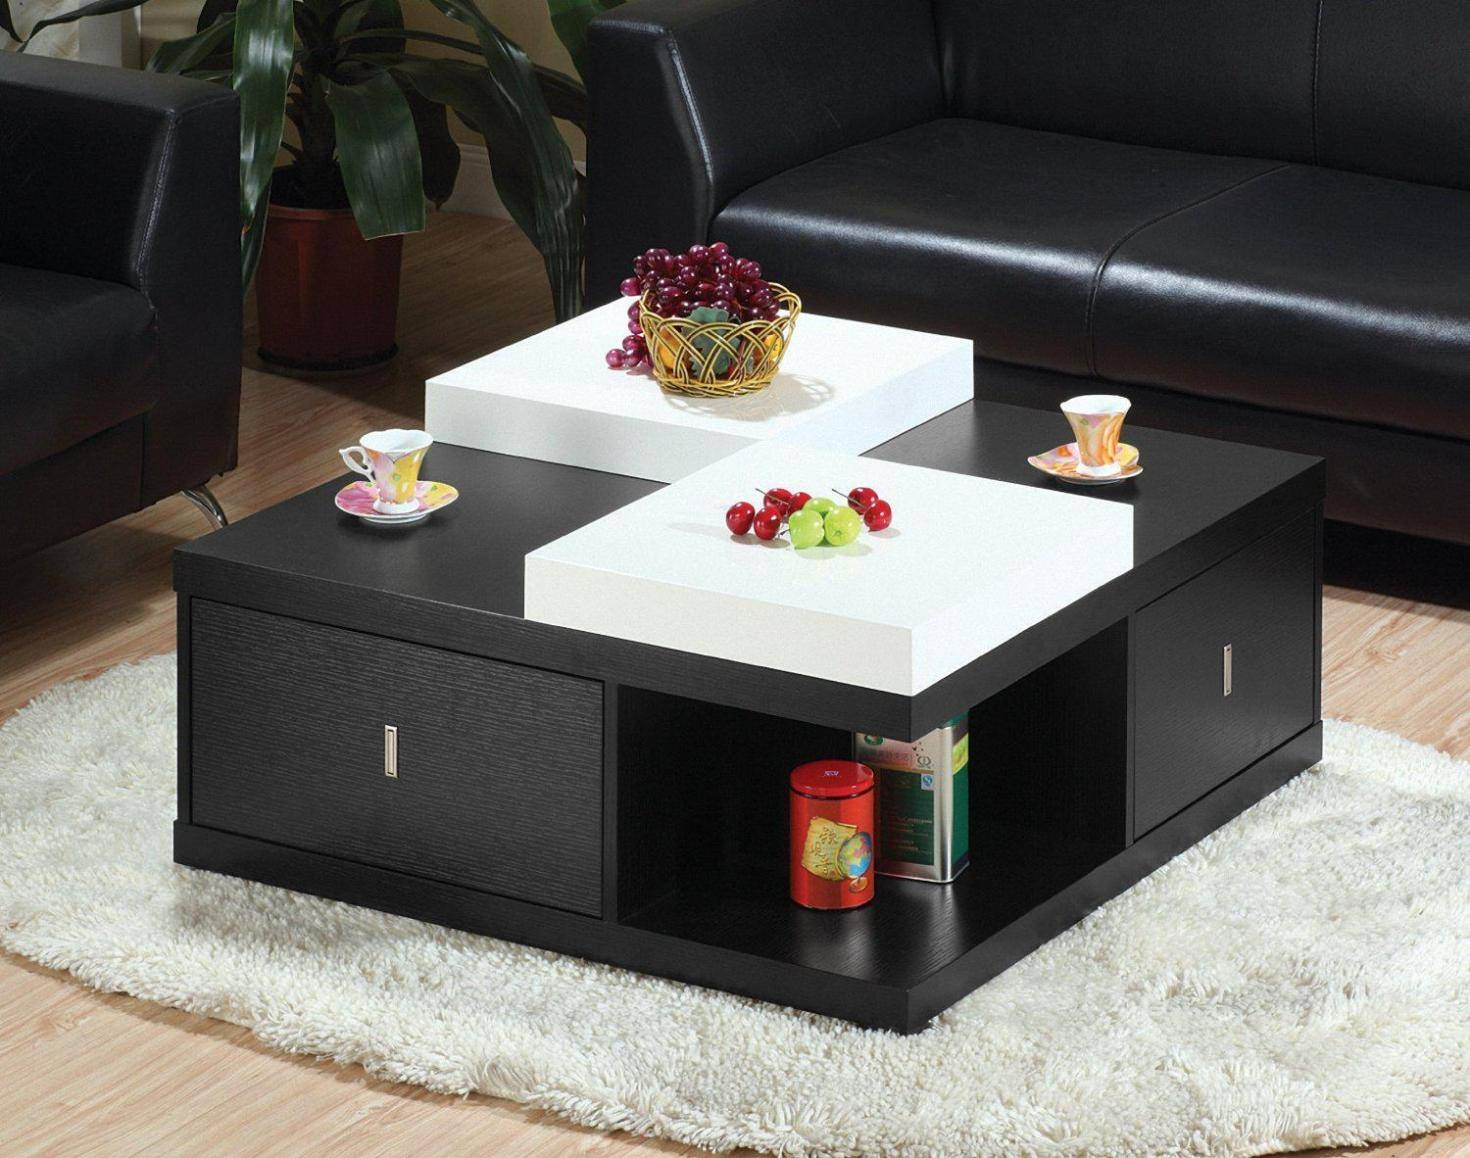 Best Design Square Coffee Table With Storage Bed & Shower For Big Black Coffee Tables (View 24 of 30)